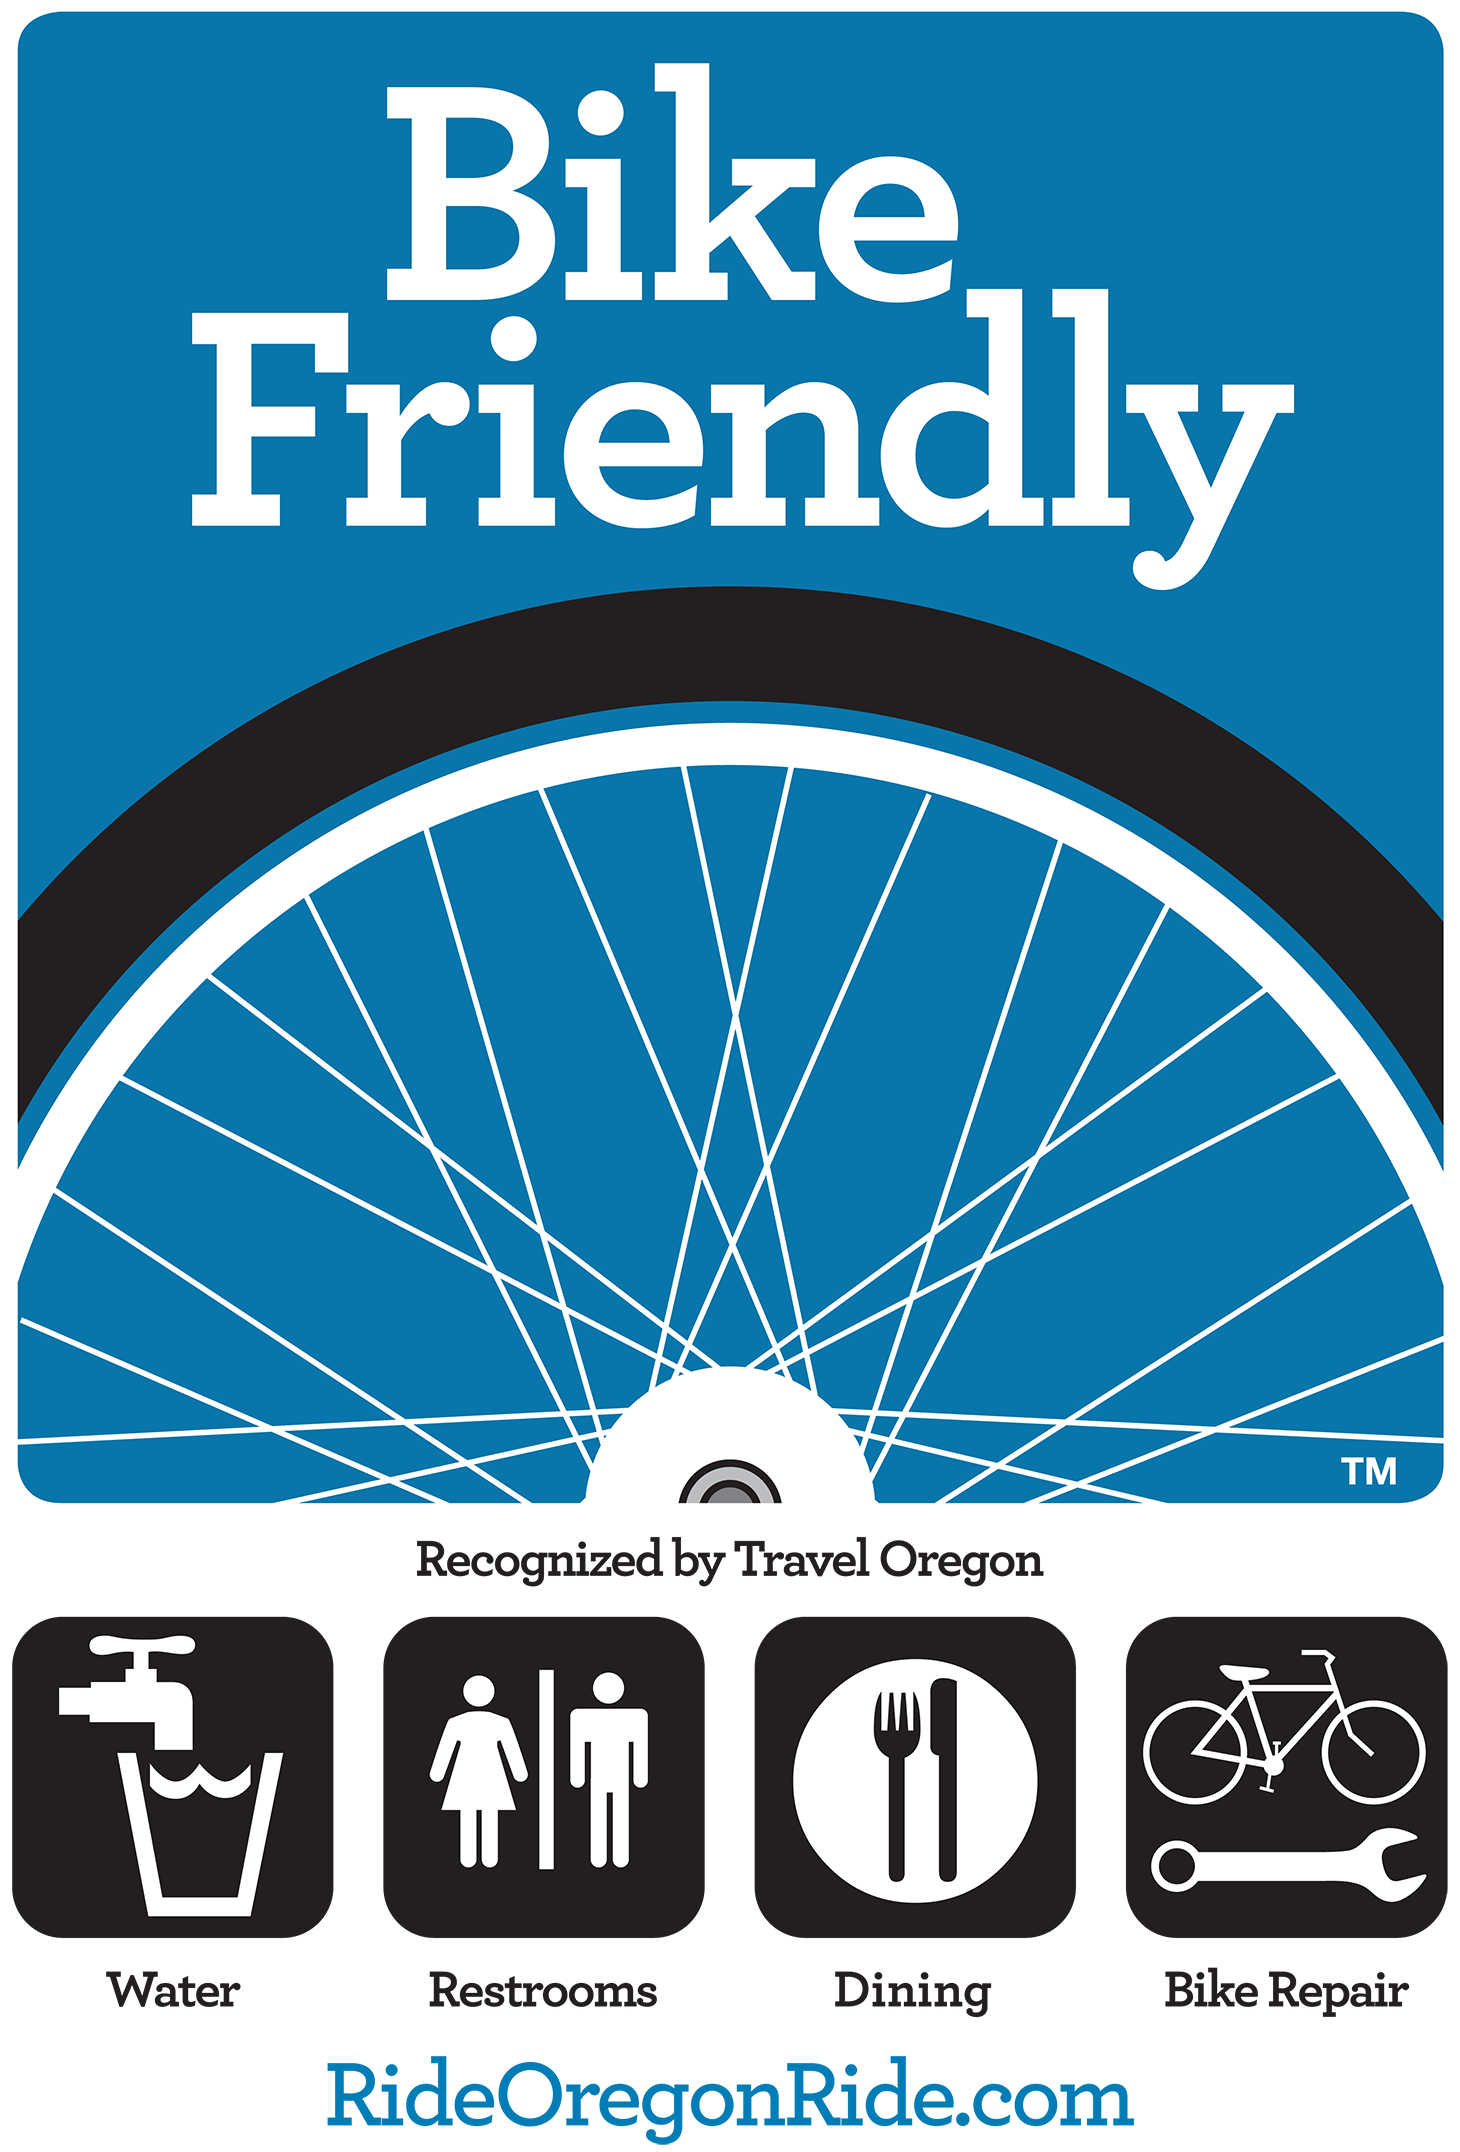 Customize your Bike Friendly sign with the specific amenities your business offers.